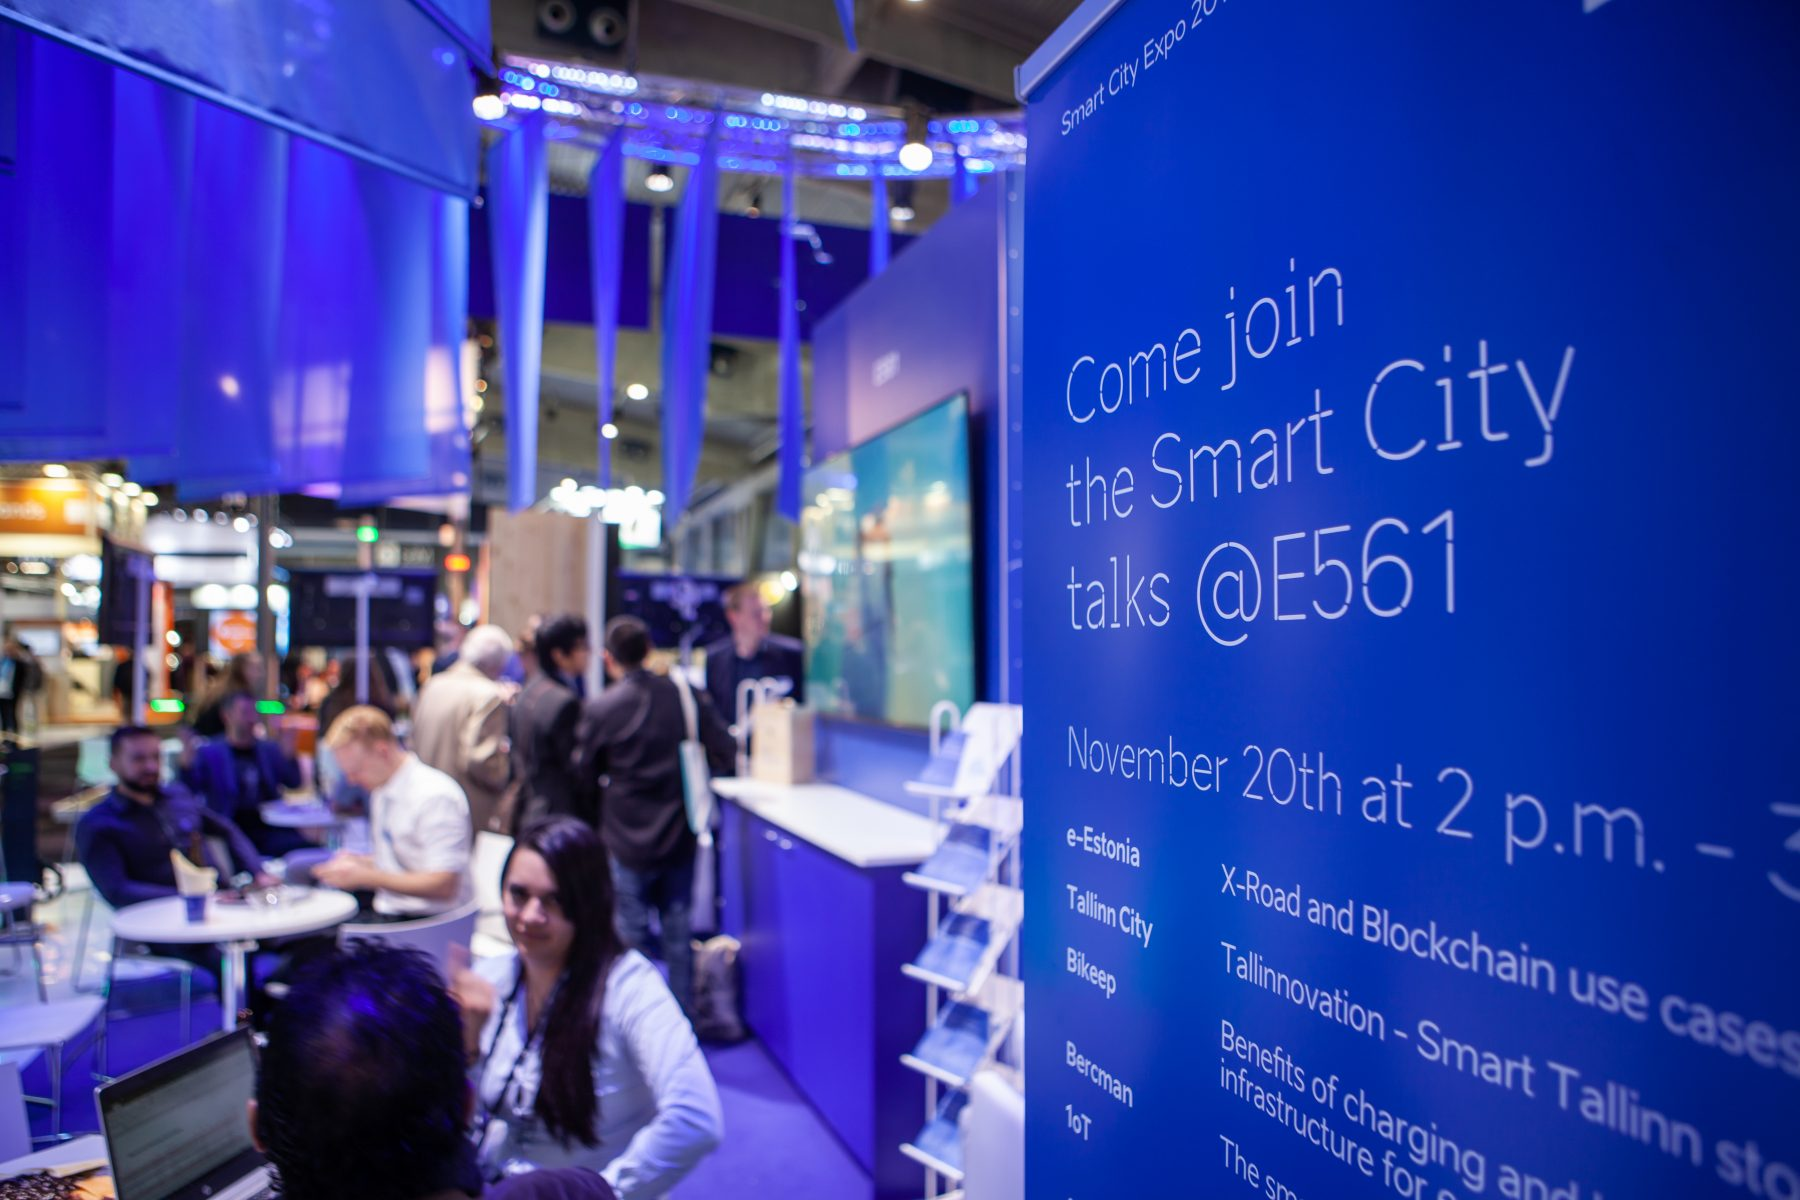 Smart city expo booth